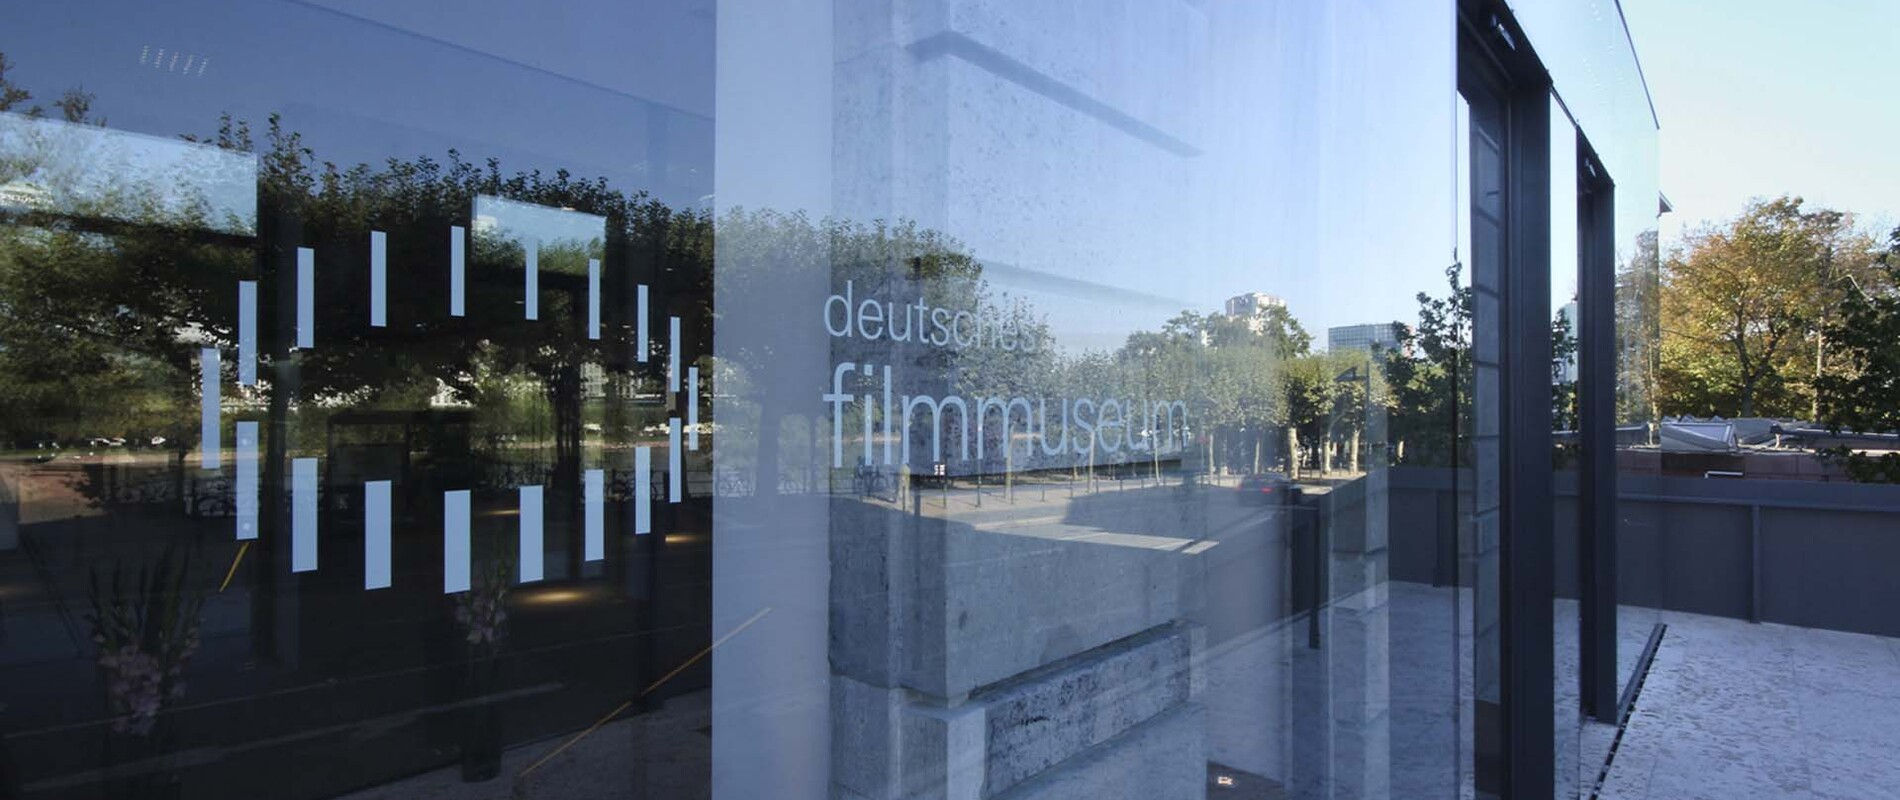 Rebuild of the film museum in Frankfurt - entrance detail glazing